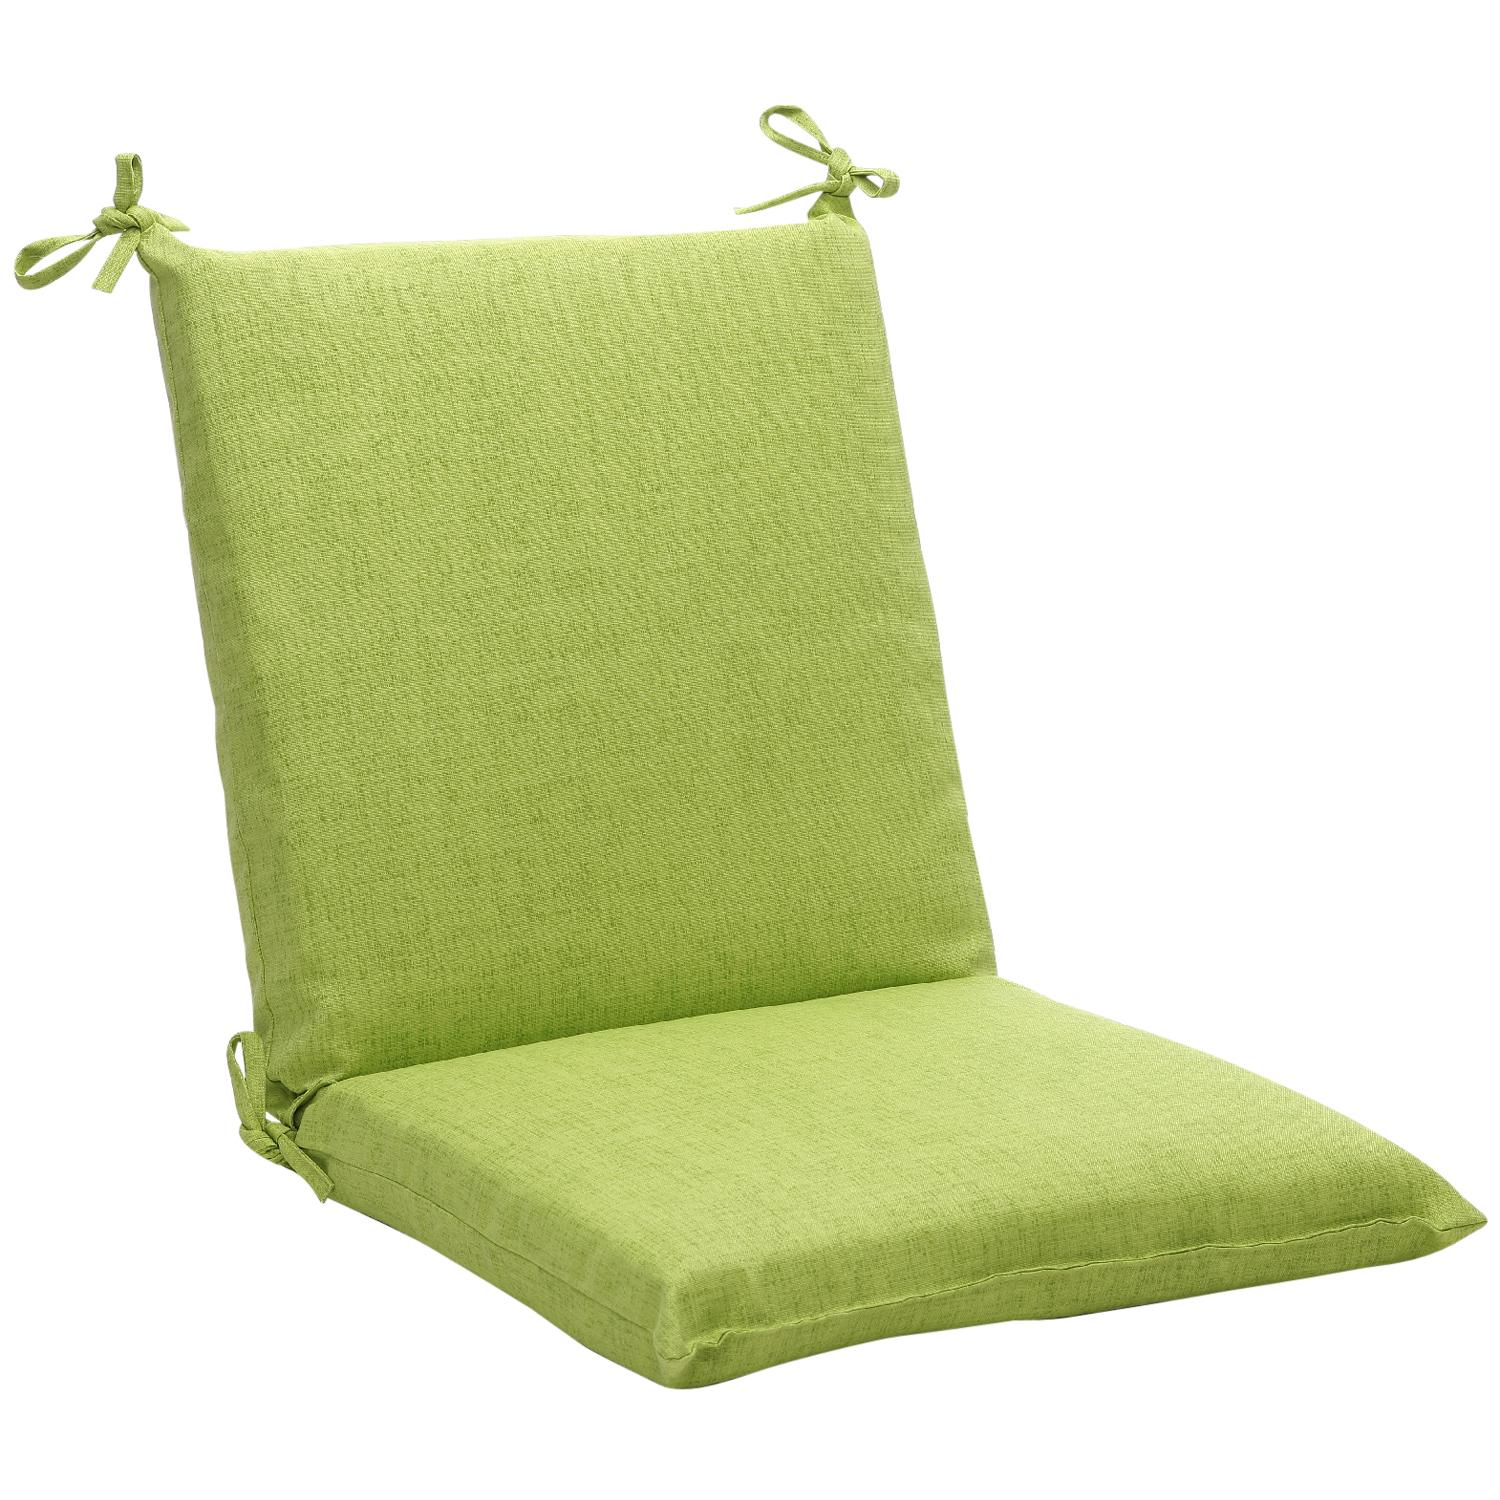 "36.5"" Eco-Friendly Recycled Square Outdoor Chair Cushion - Textured Green"